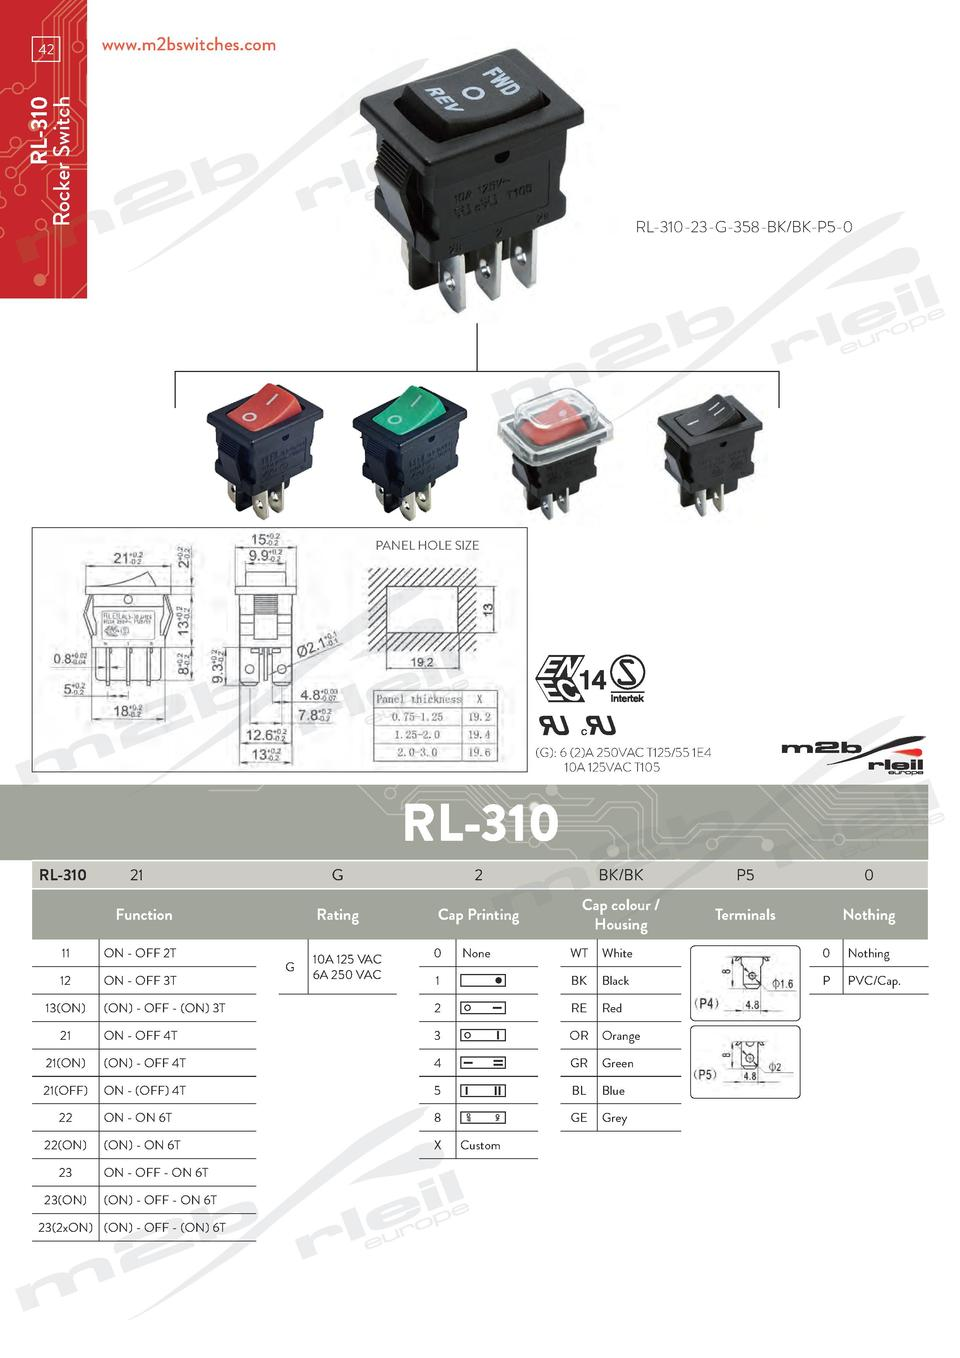 www.m2bswitches.com  RL-310 Rocker Switch  42  RL-310-23-G-358-BK BK-P5-0  PANEL HOLE SIZE   G   6  2 A 250VAC T125 55 1E4...